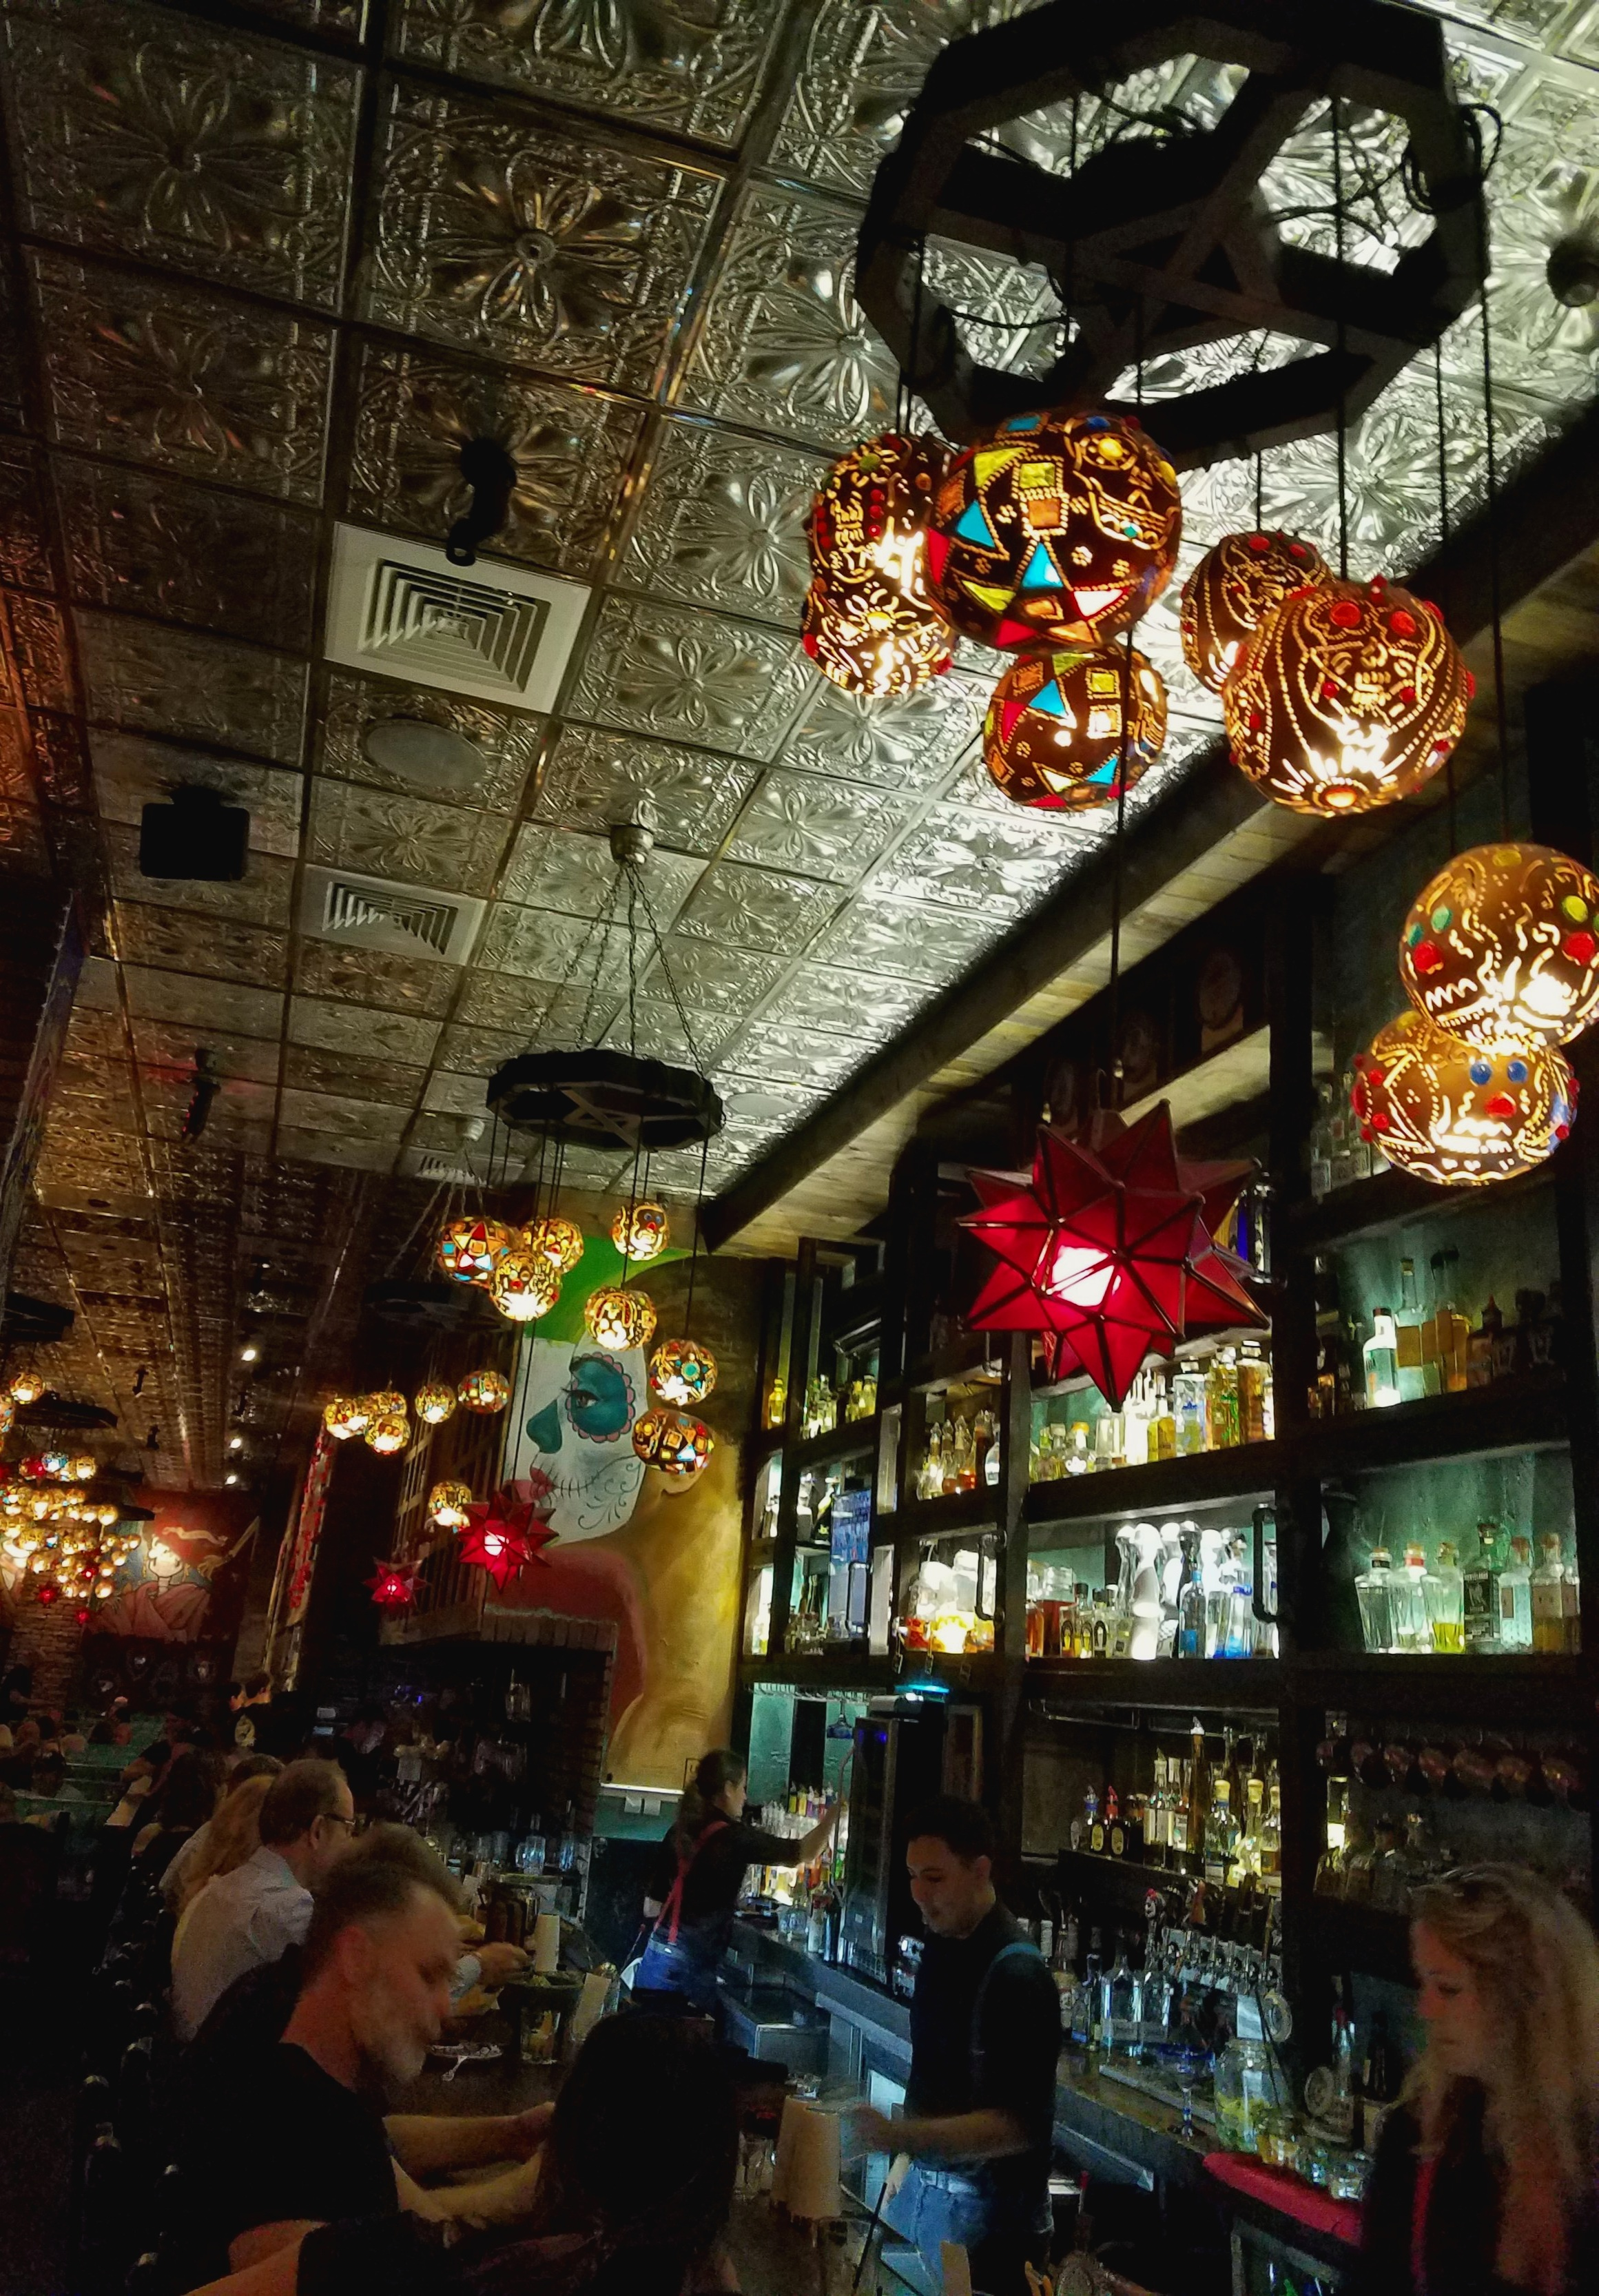 Calaveras Cantina has an amazing selection of fairly priced tequilas, a great happy hour & fabulous decor…plus, you can take your boat/tender to the restaurant! www.calaverascantinas.com